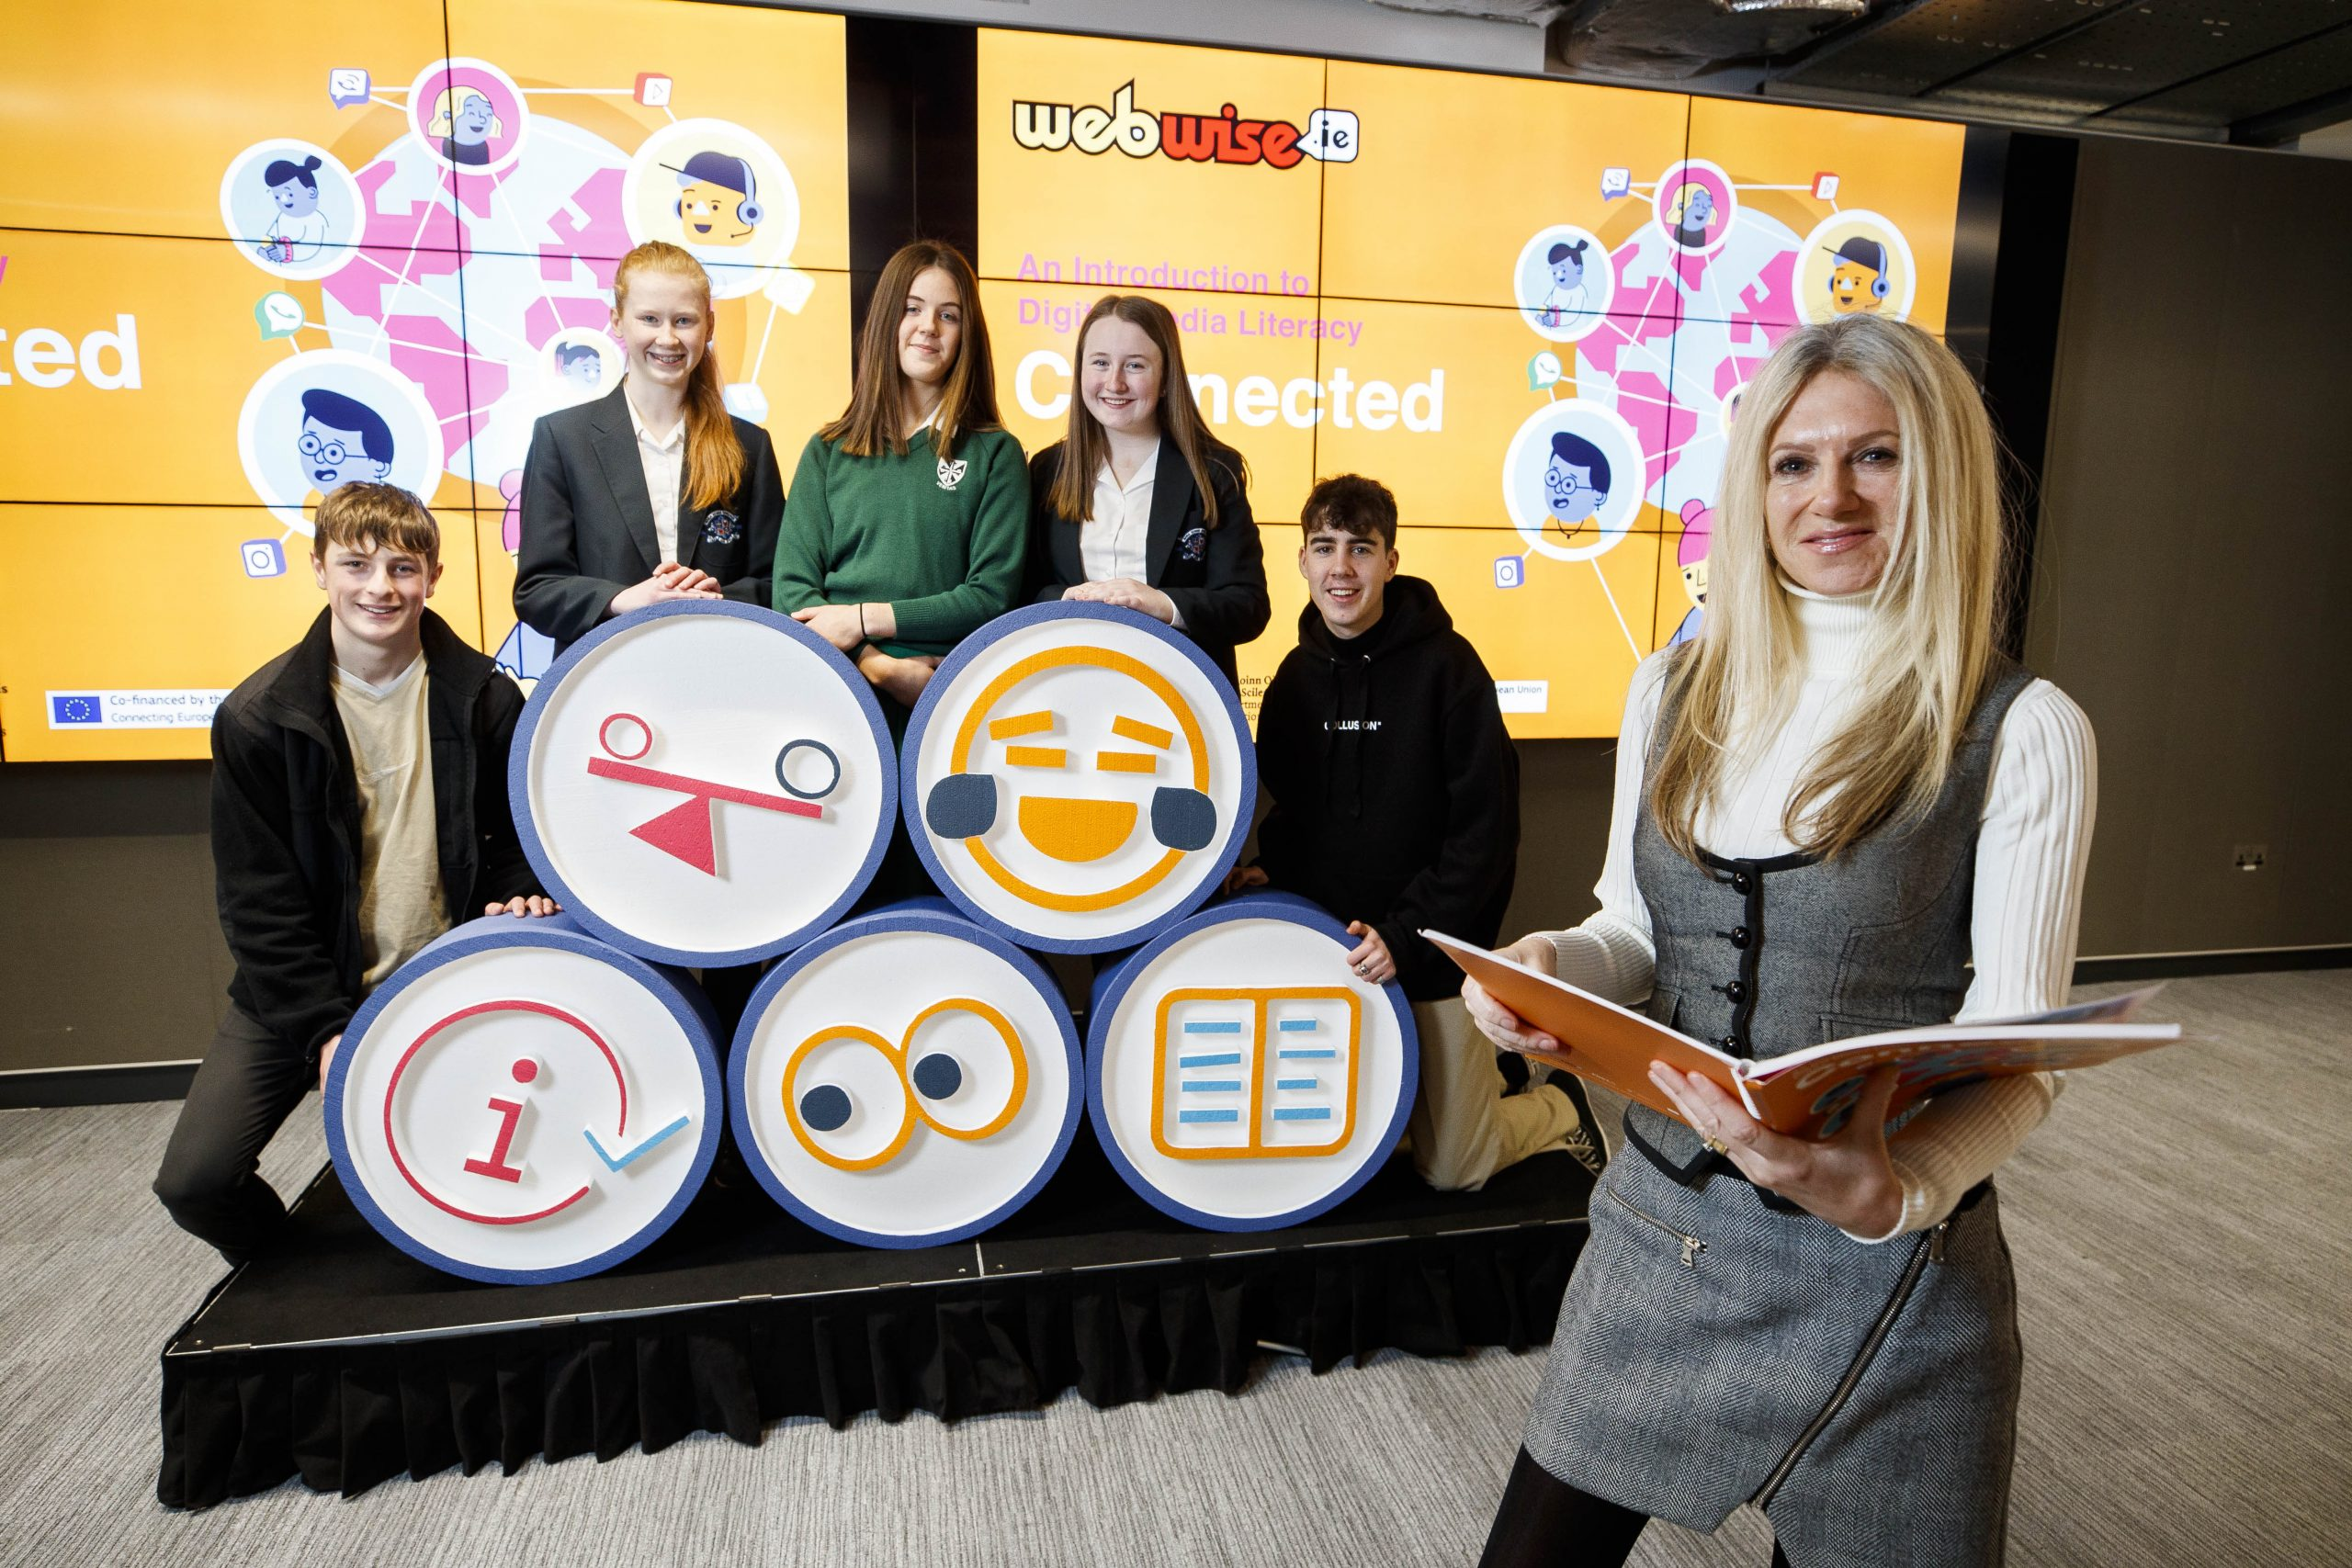 New programme addressing emerging technologies launched for Safer Internet Day 2020